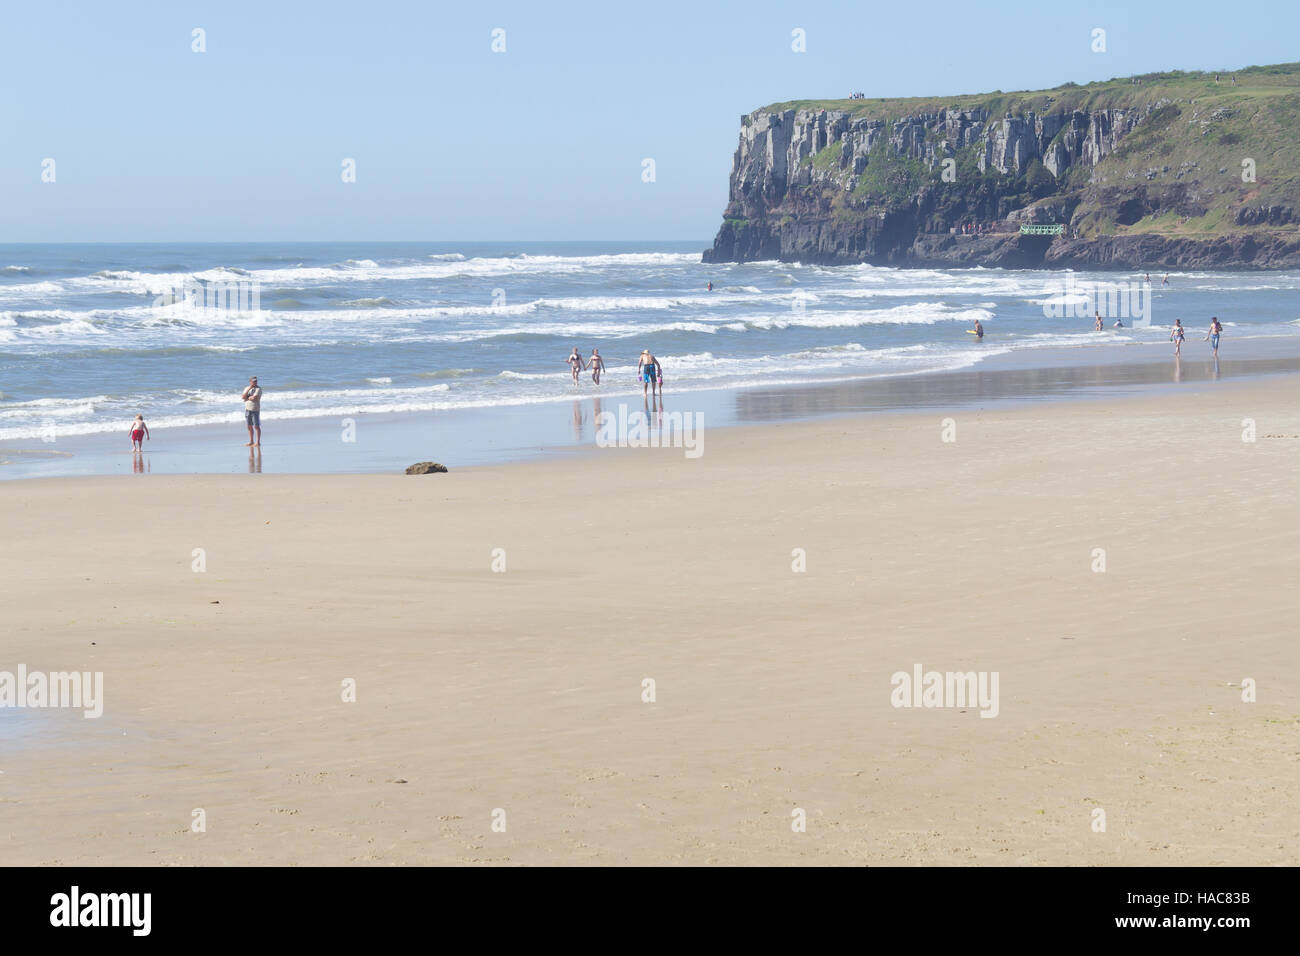 Sunny day with waves and blue sky at Torres, Rio Grande do Sul. Cliffs in background. - Stock Image